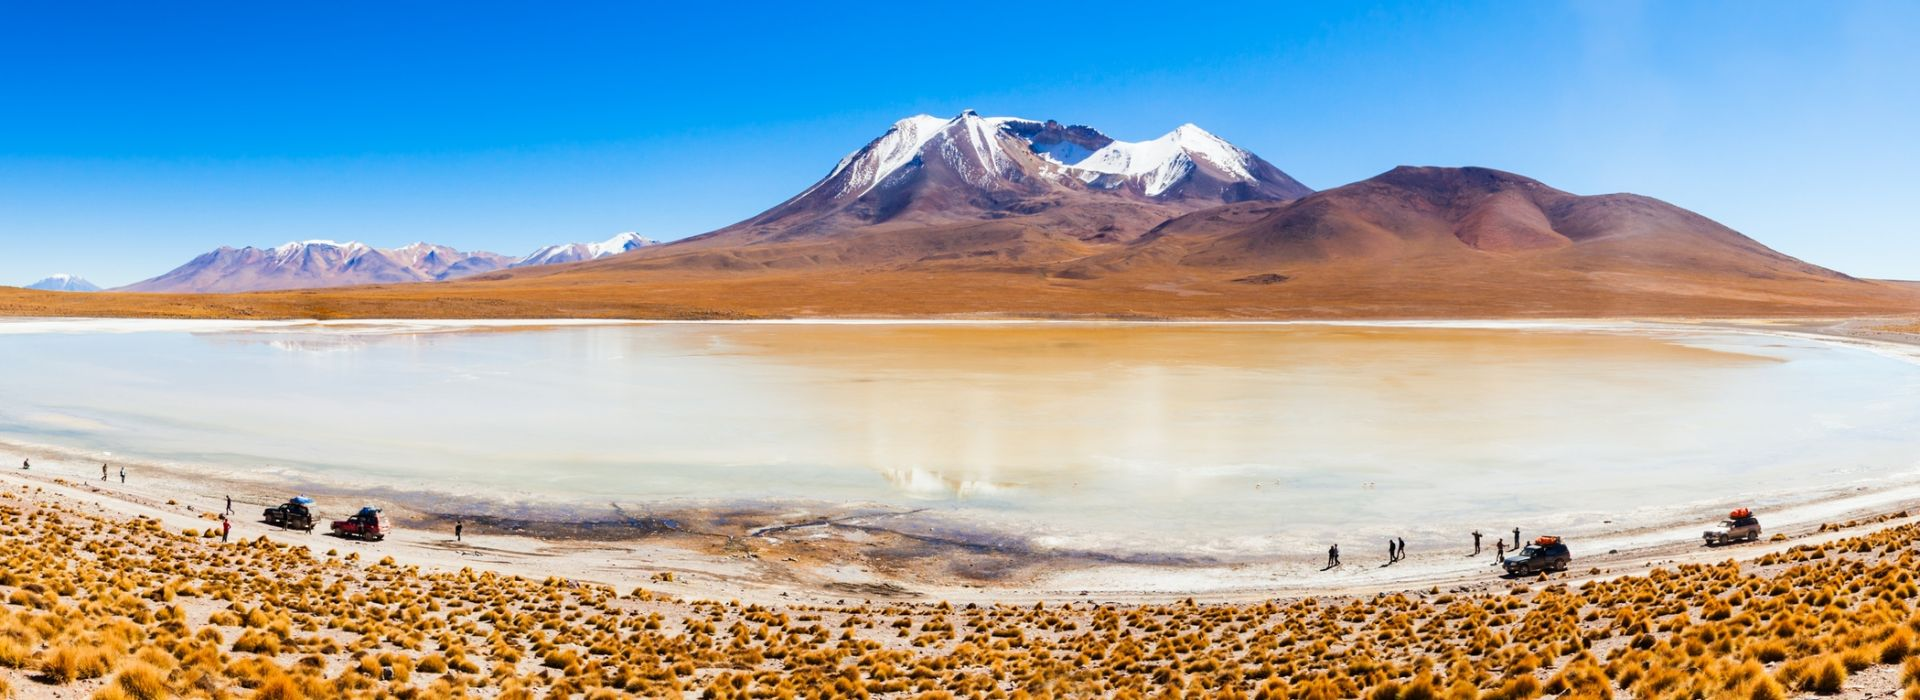 Travelling Bolivia - Tours and Trips in Bolivia